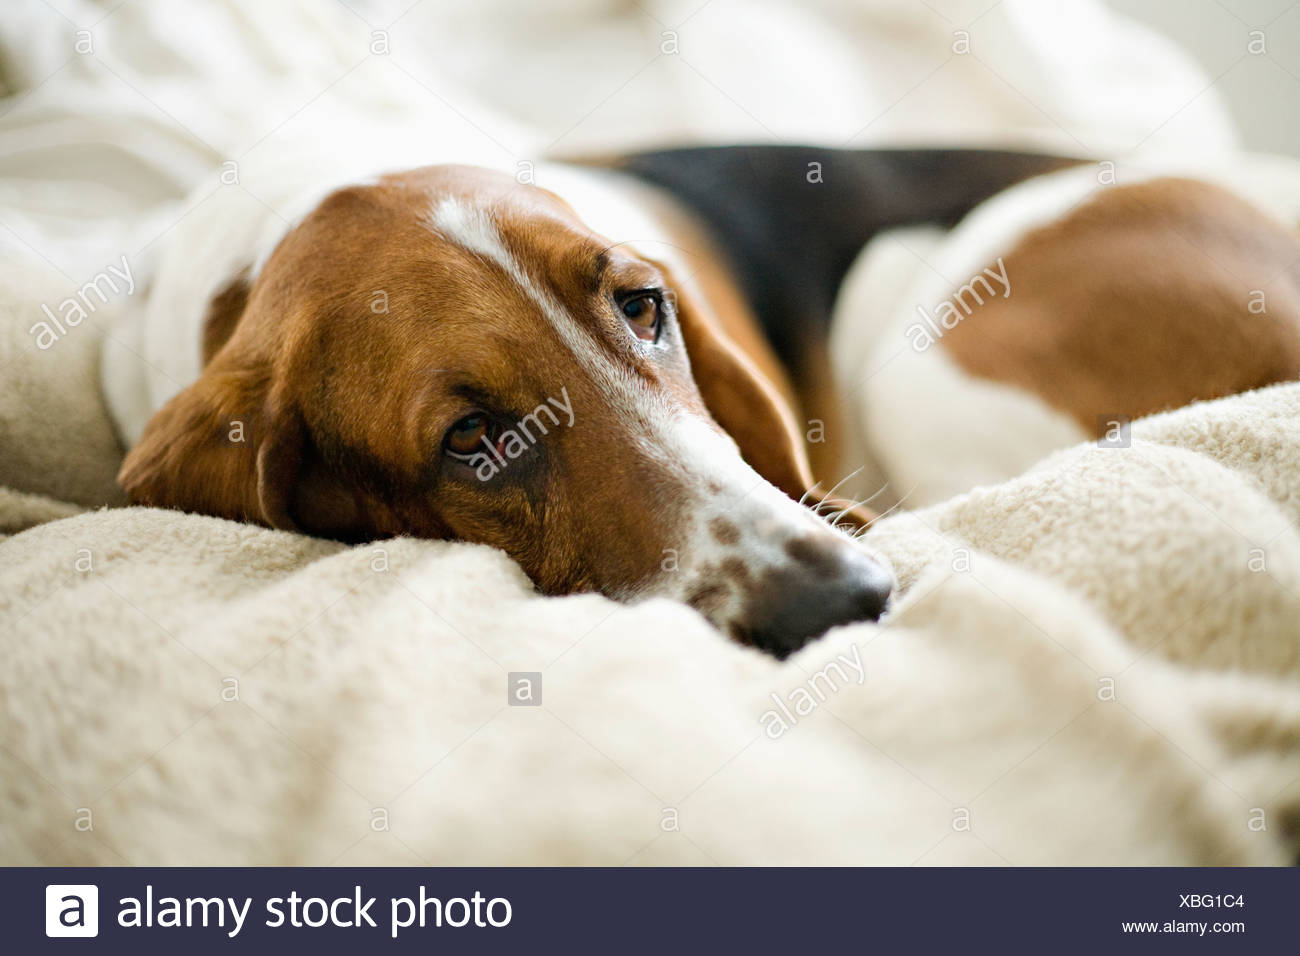 USA, Illinois, Washington, Bassett Hound lying on bed - Stock Image